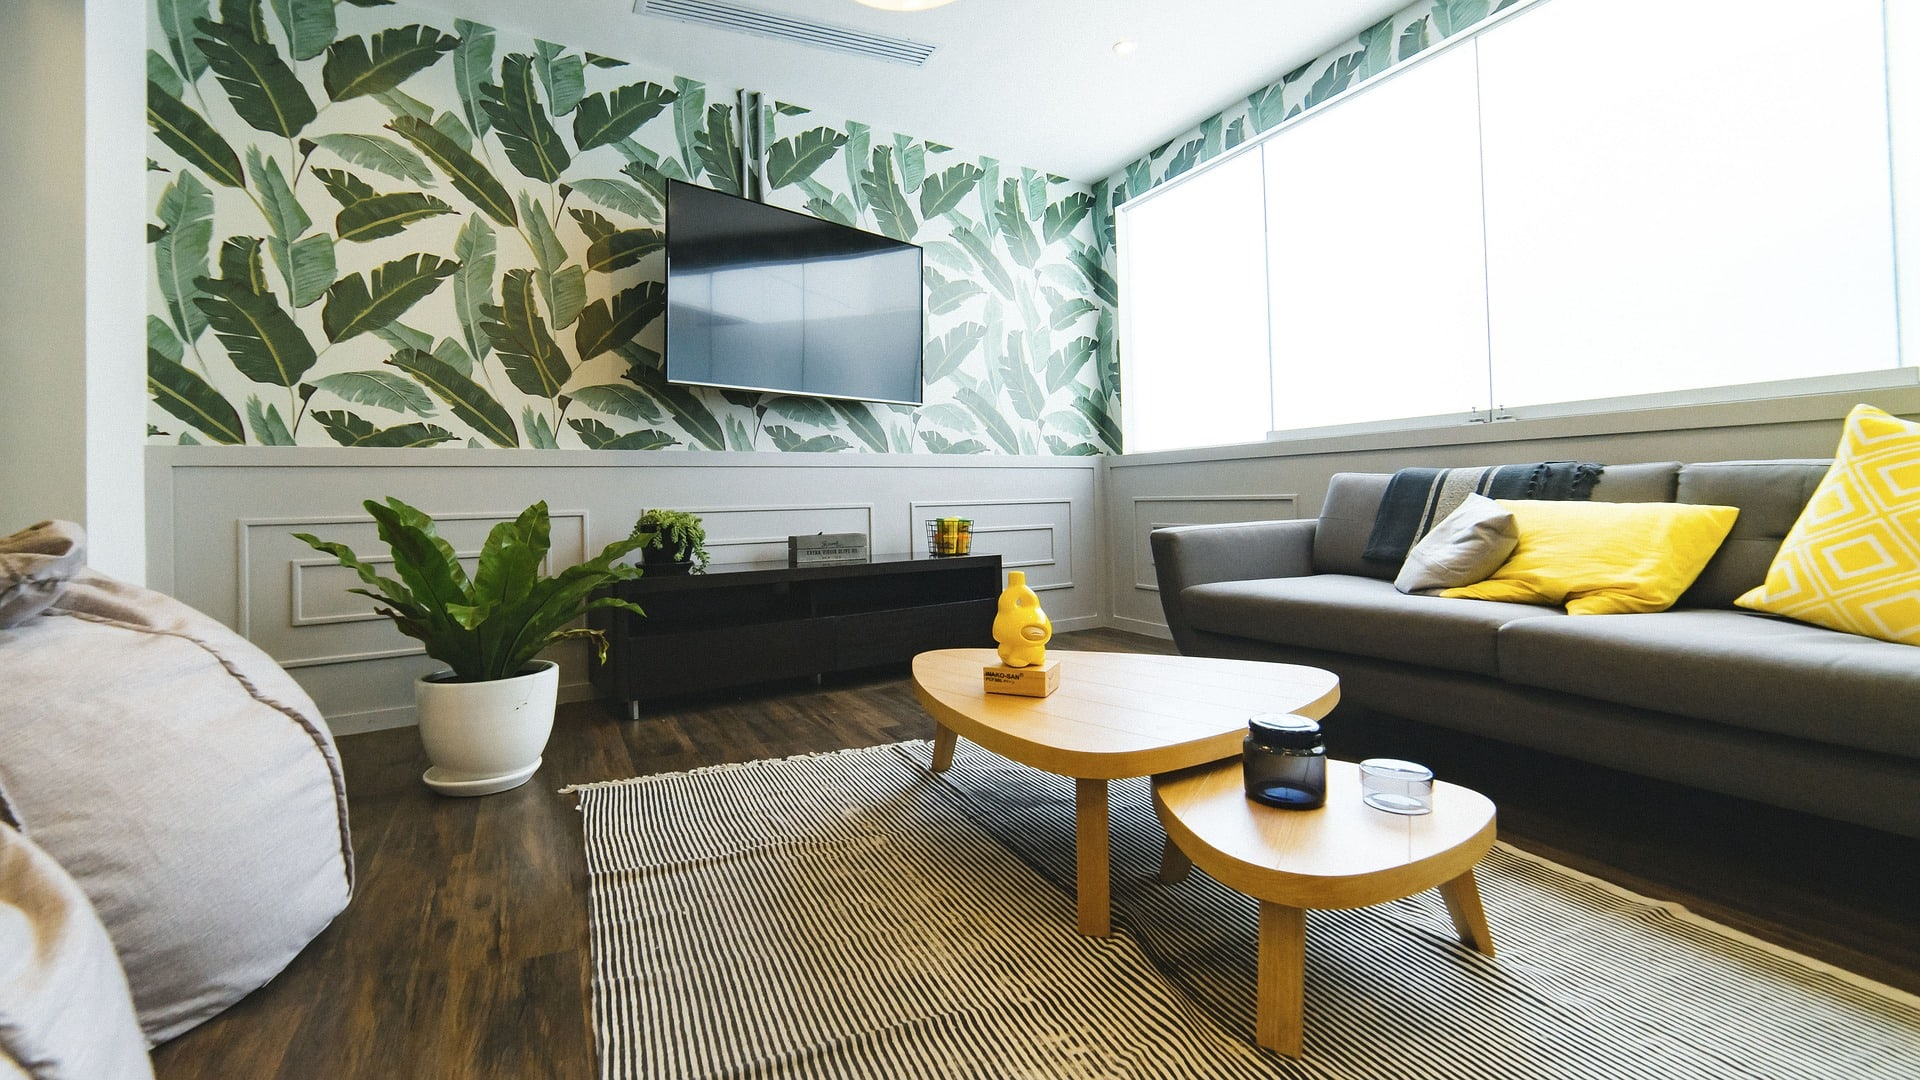 How to Create a Smart Home Without the Internet 1